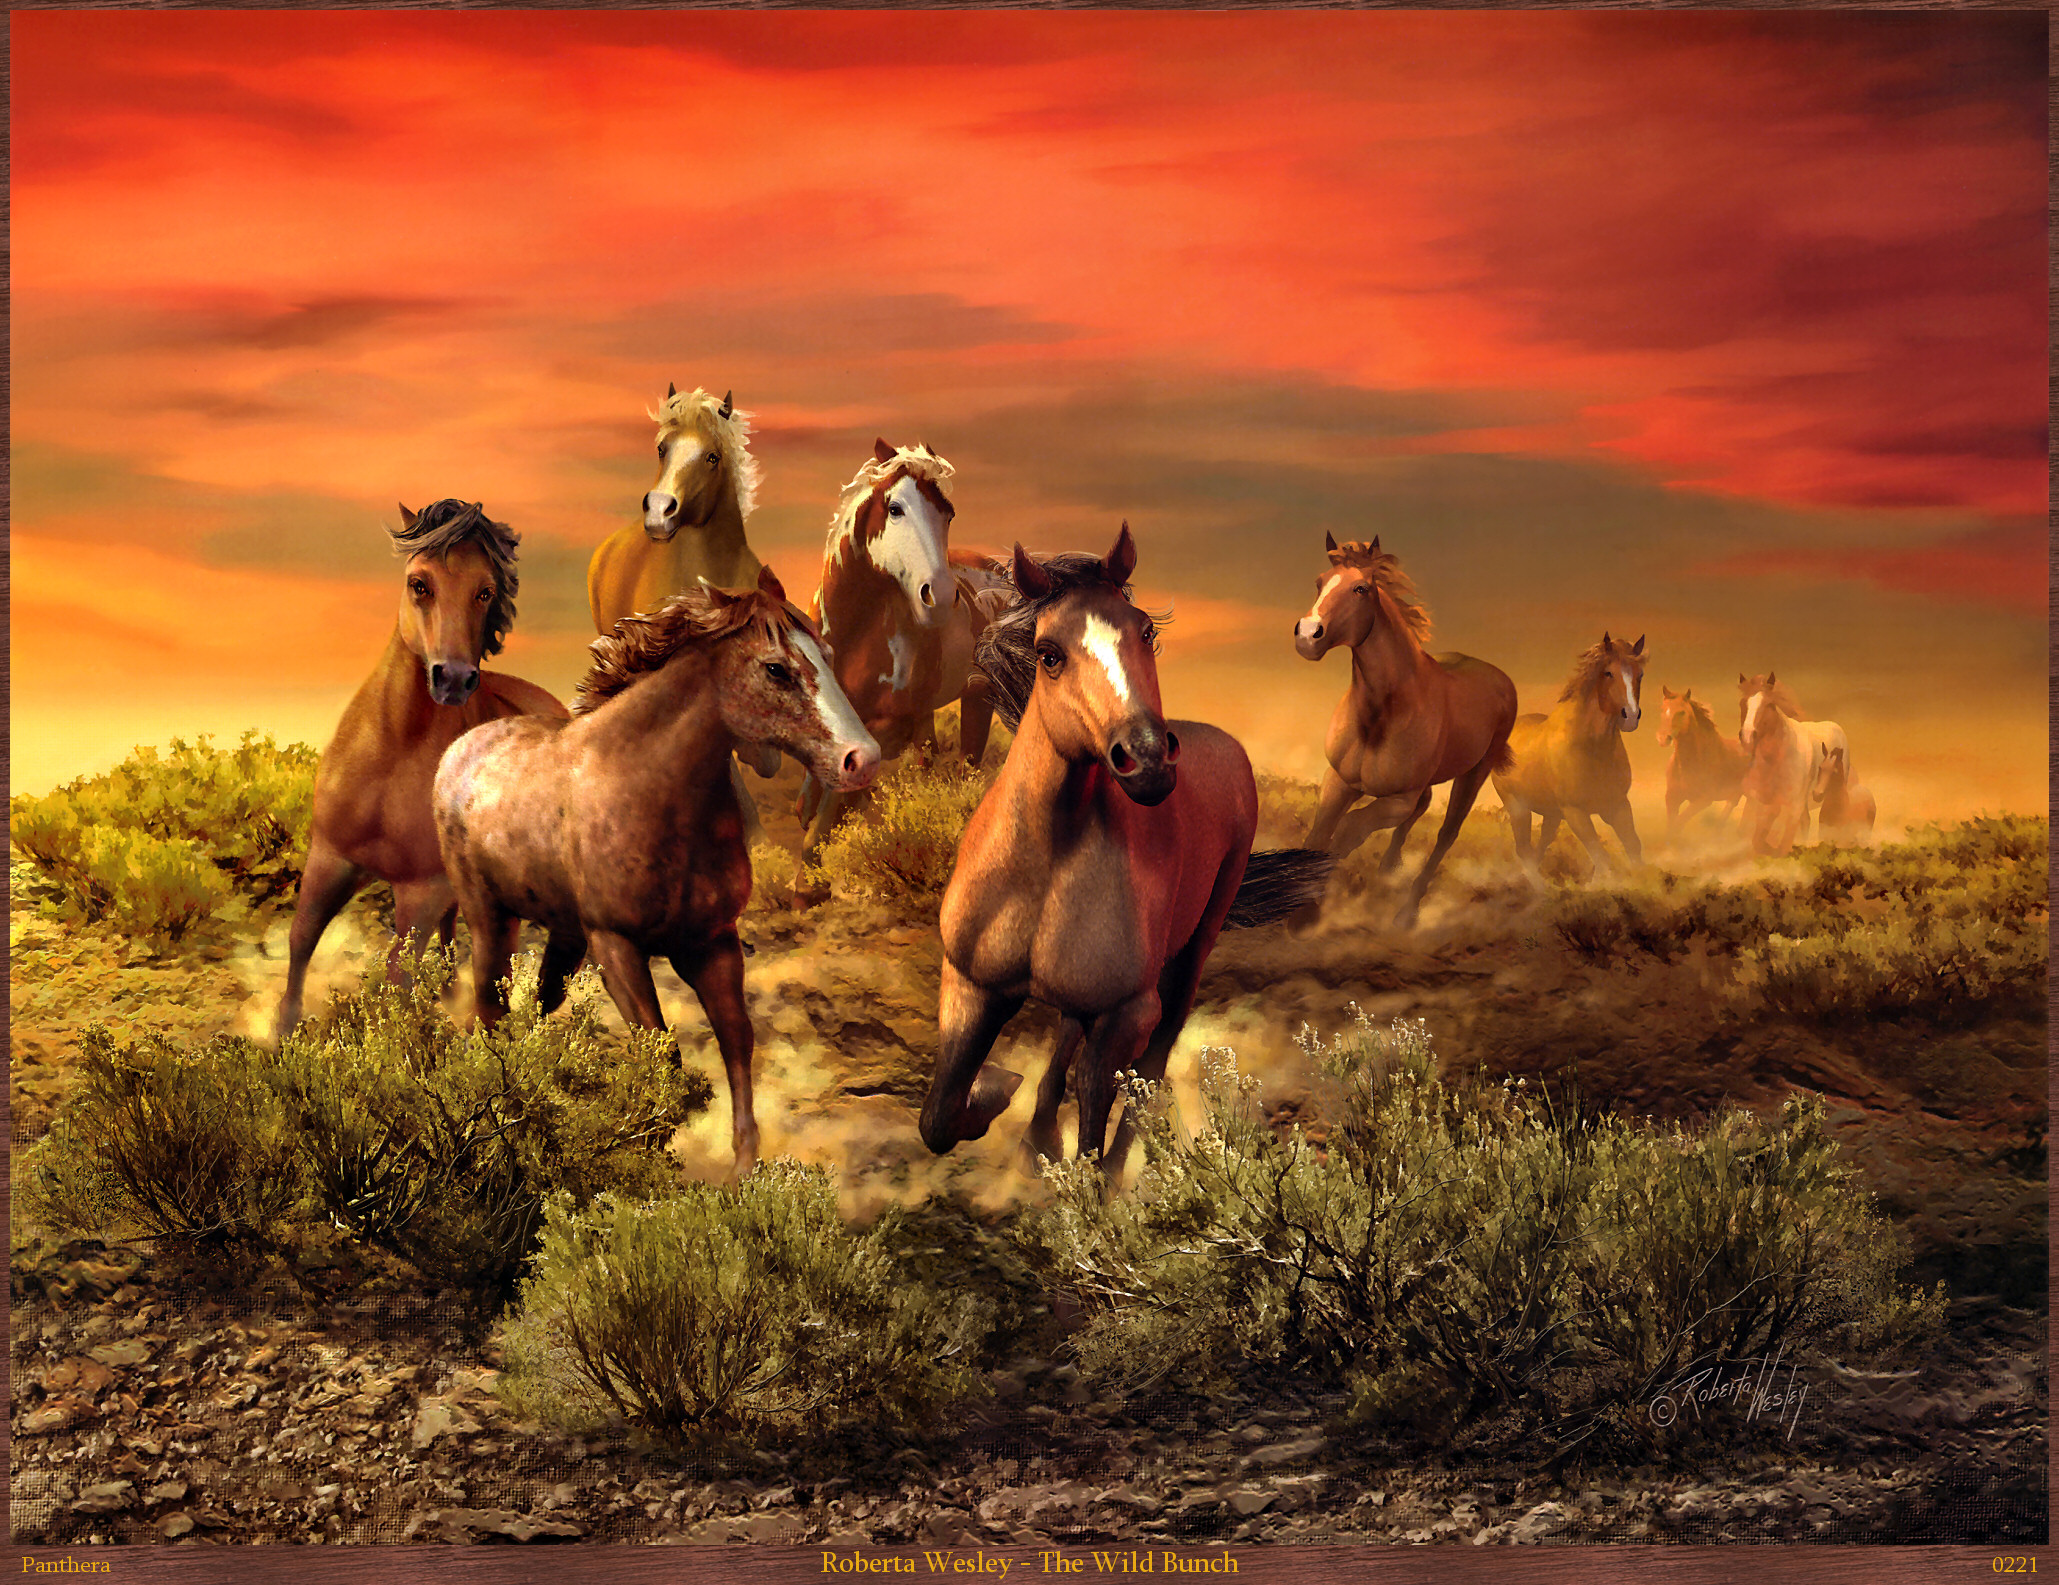 A Group Of Wild Horses Racing At Sunset Full HD Wallpaper And